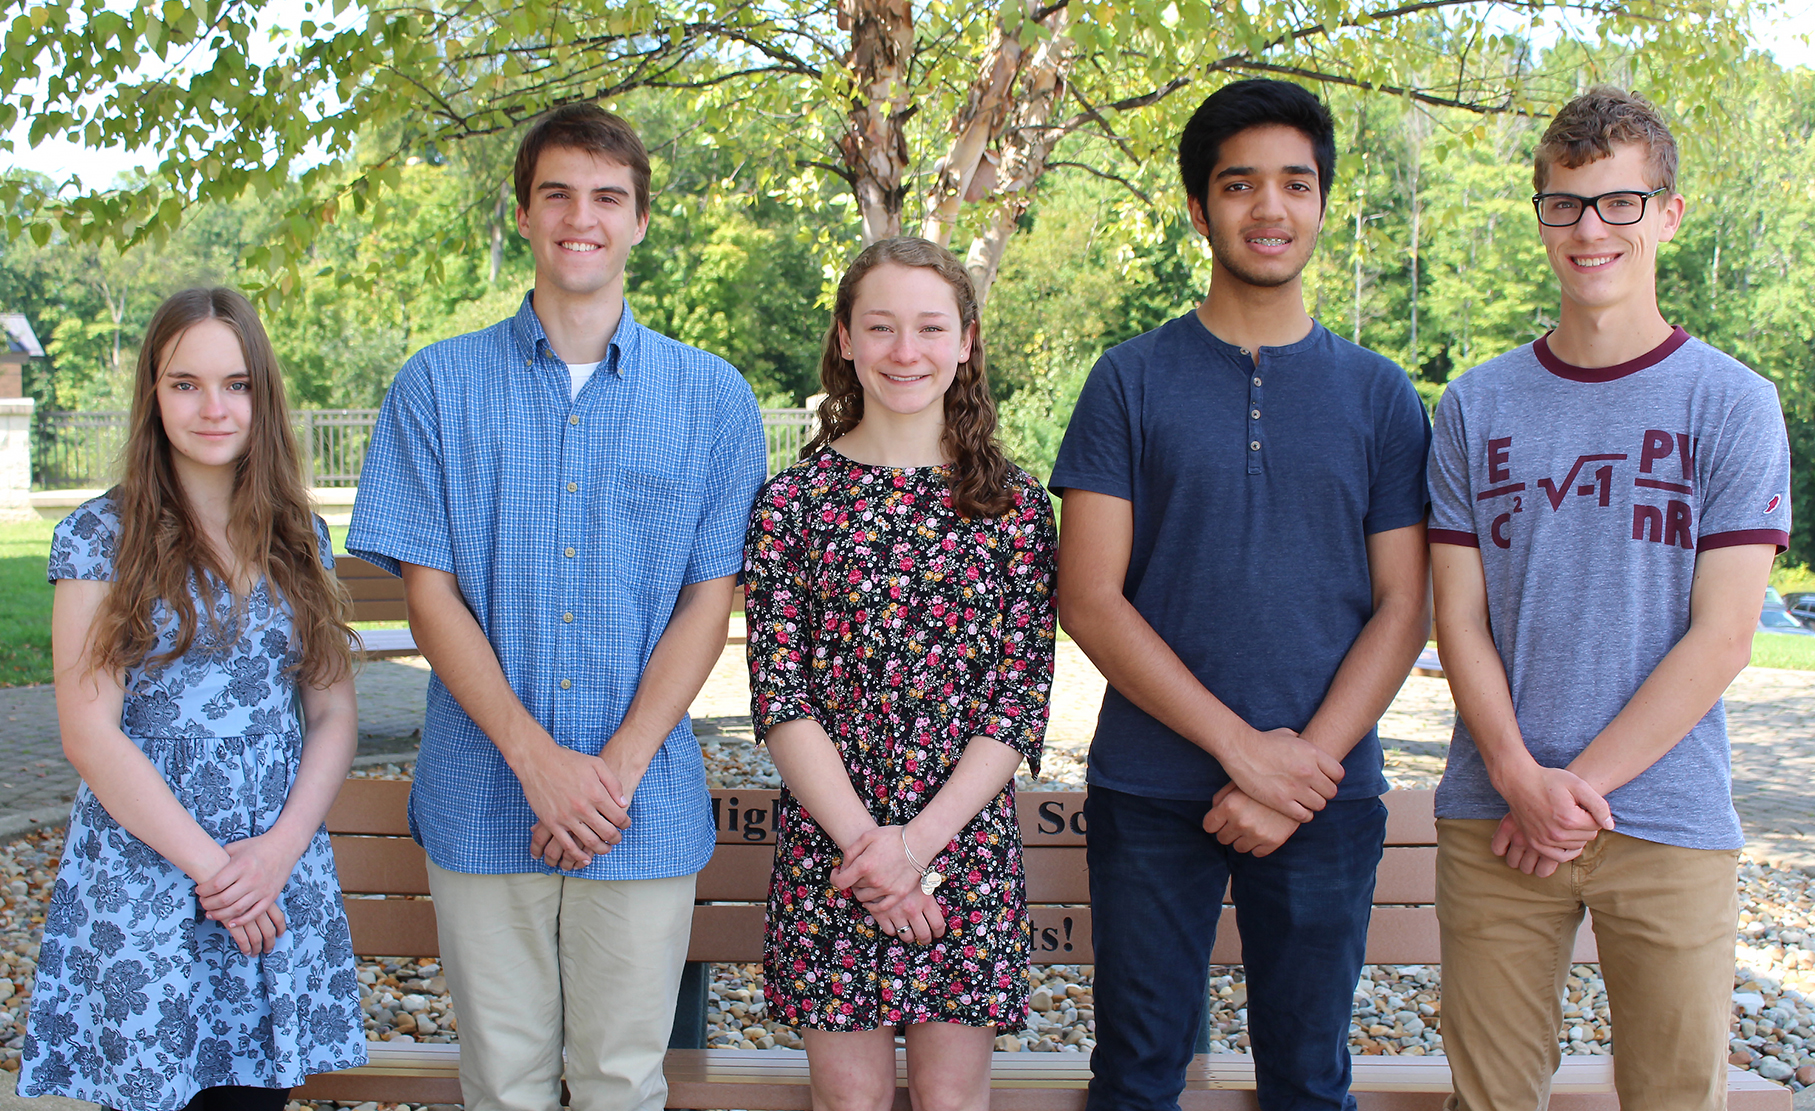 Pictured from left are Lorelyn Nolte, Quade Mainzer, Margaret Knyszek, Abdullah Ali and Christopher Sollenberger.